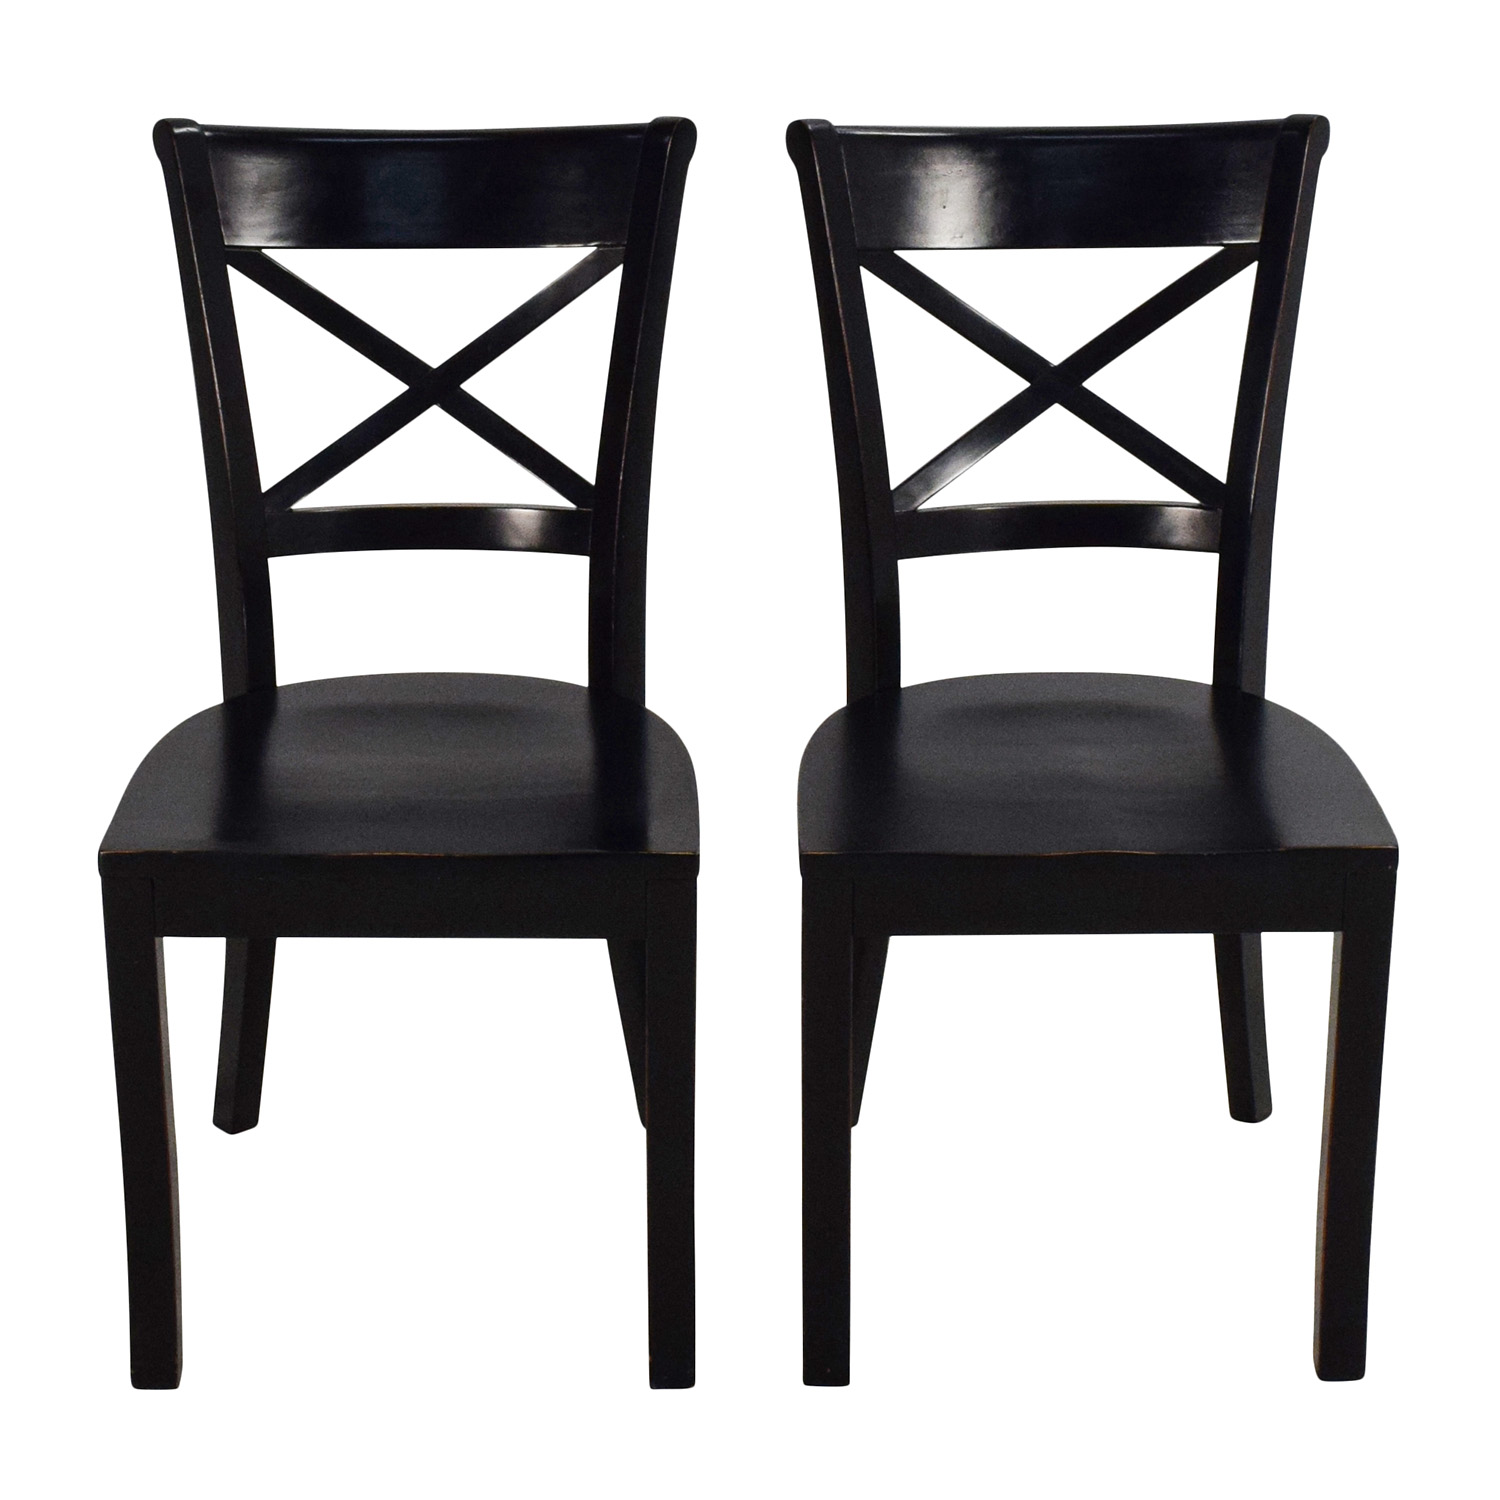 Crate & Barrel Vintner Wooden Chair Pair / Dining Chairs